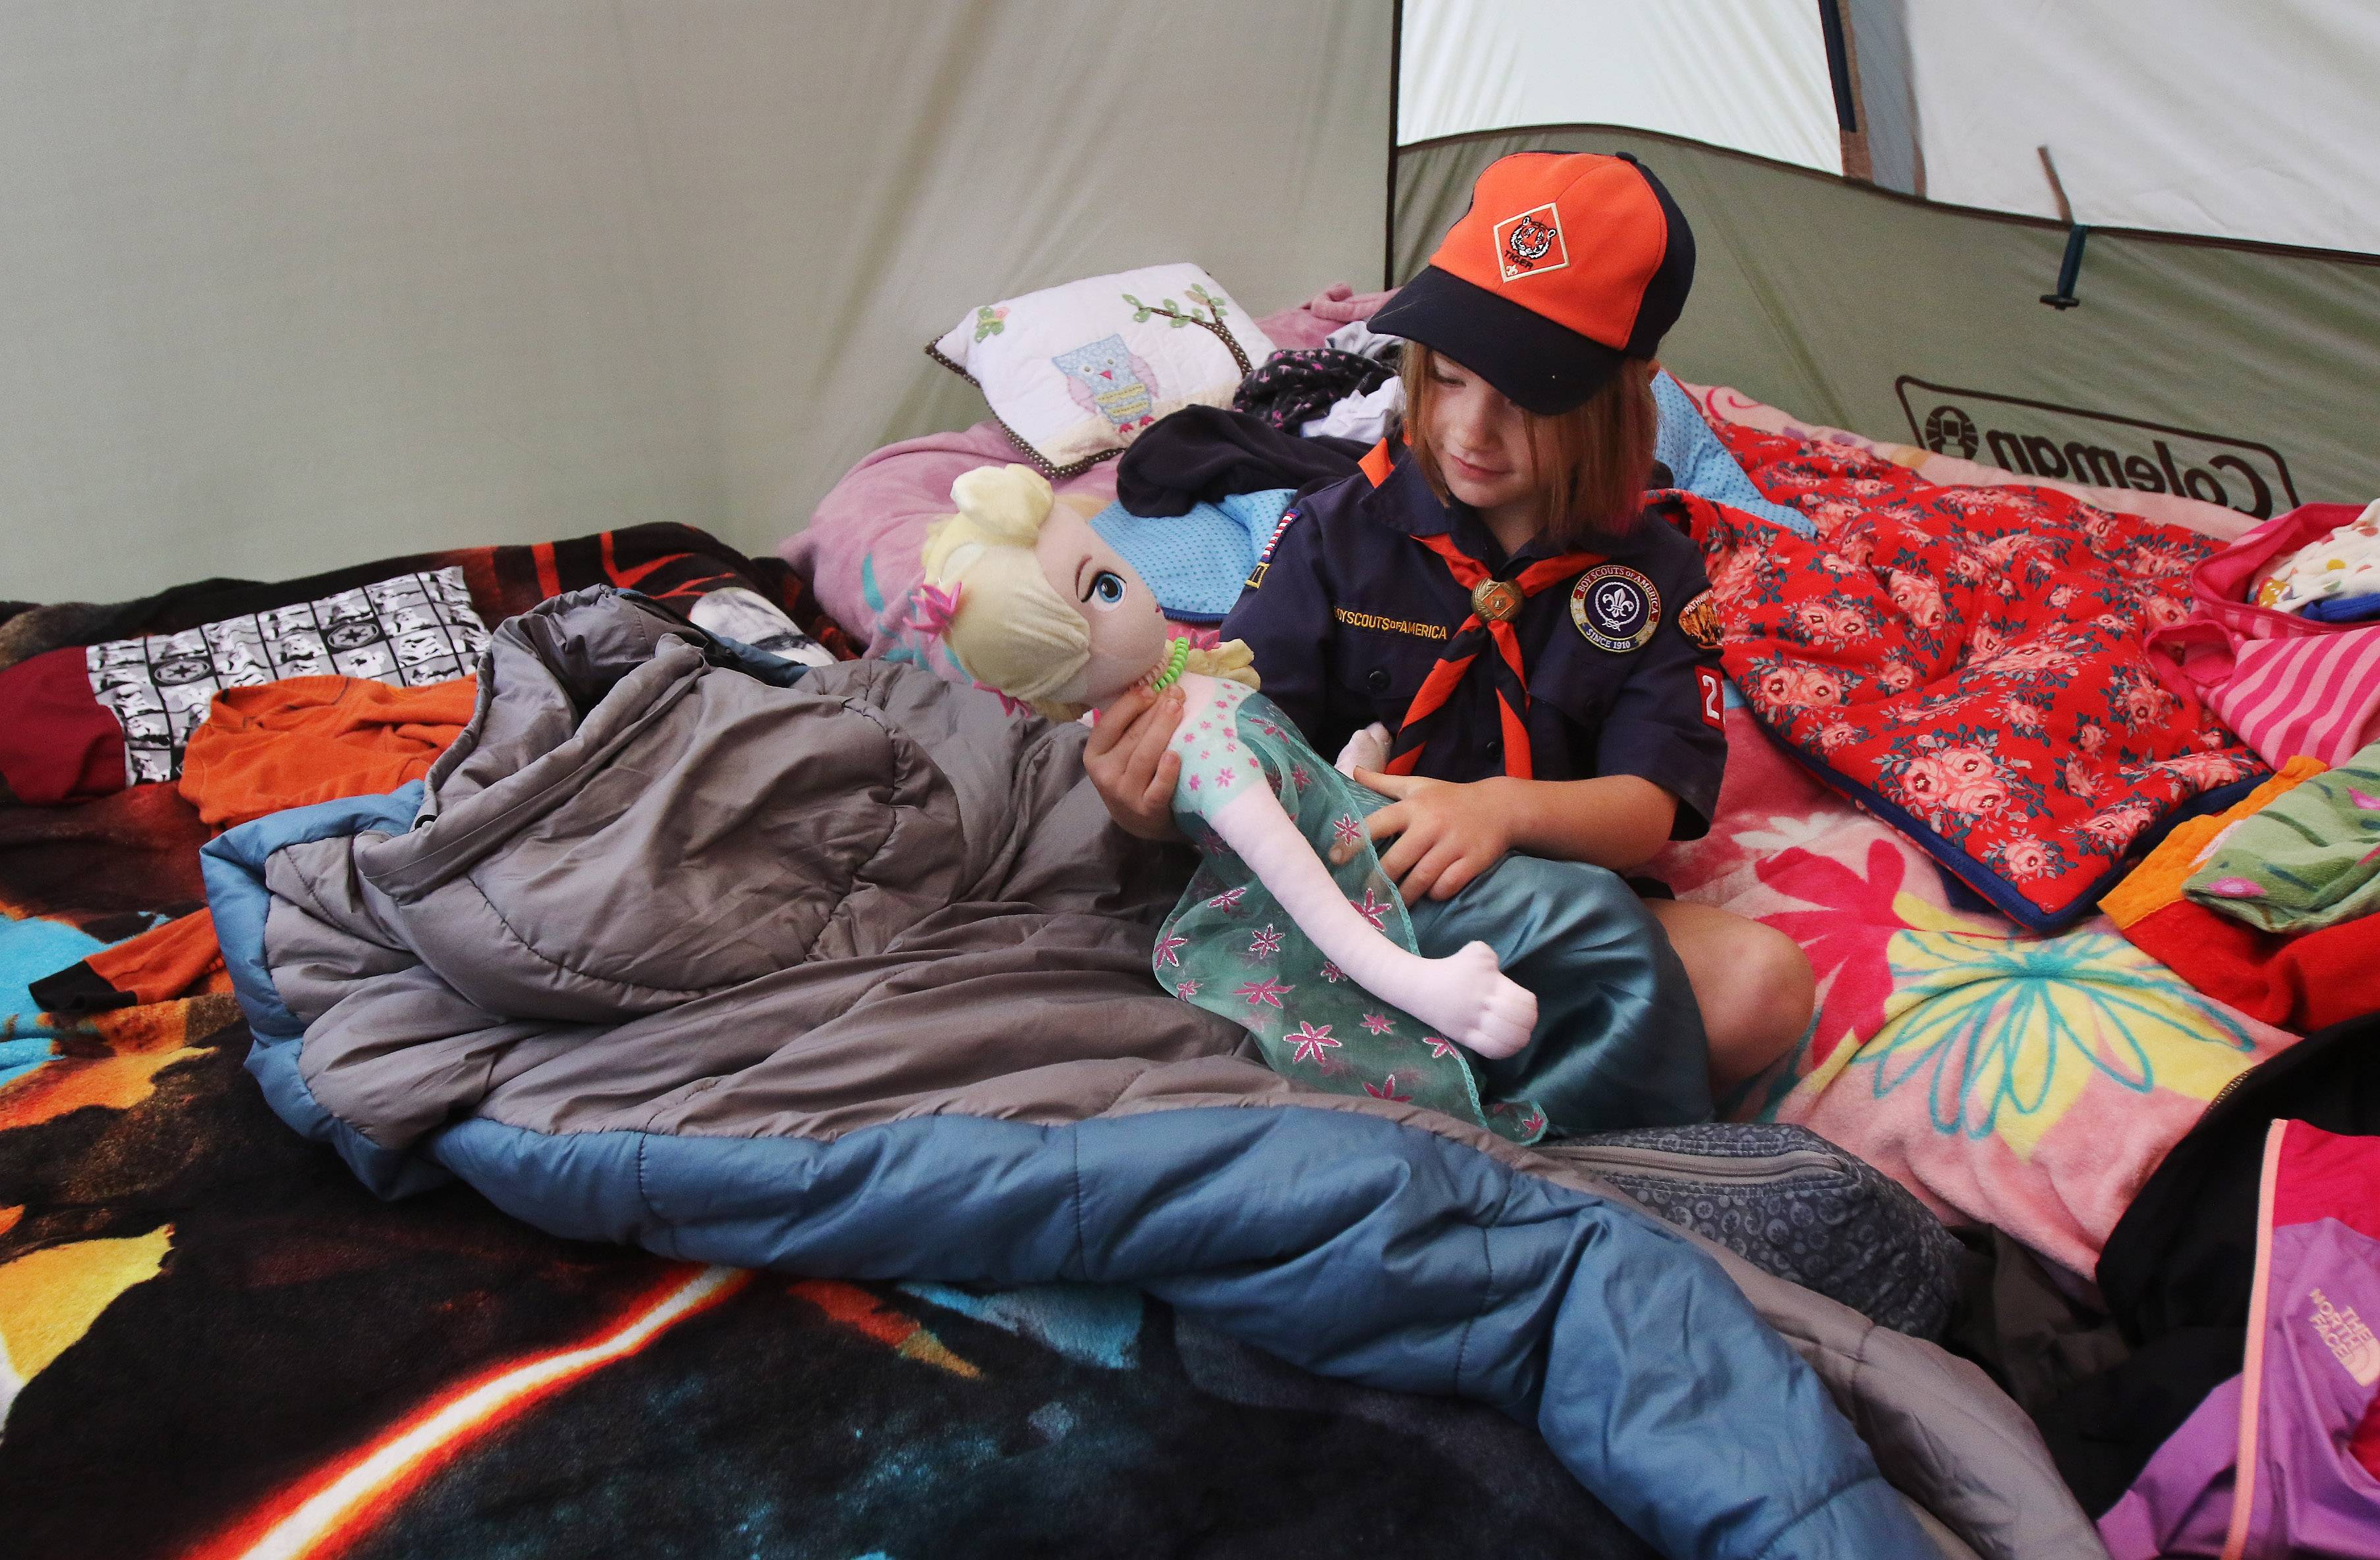 Addison Carver plays with her Elsa doll in her tent during a campout with Cub Scouts Pack 229 at Kettle Moraine State Forest in Wisconsin. Addison joined Cub Scouts this February as one of the first 13 girls in the suburbs to take part in the program.